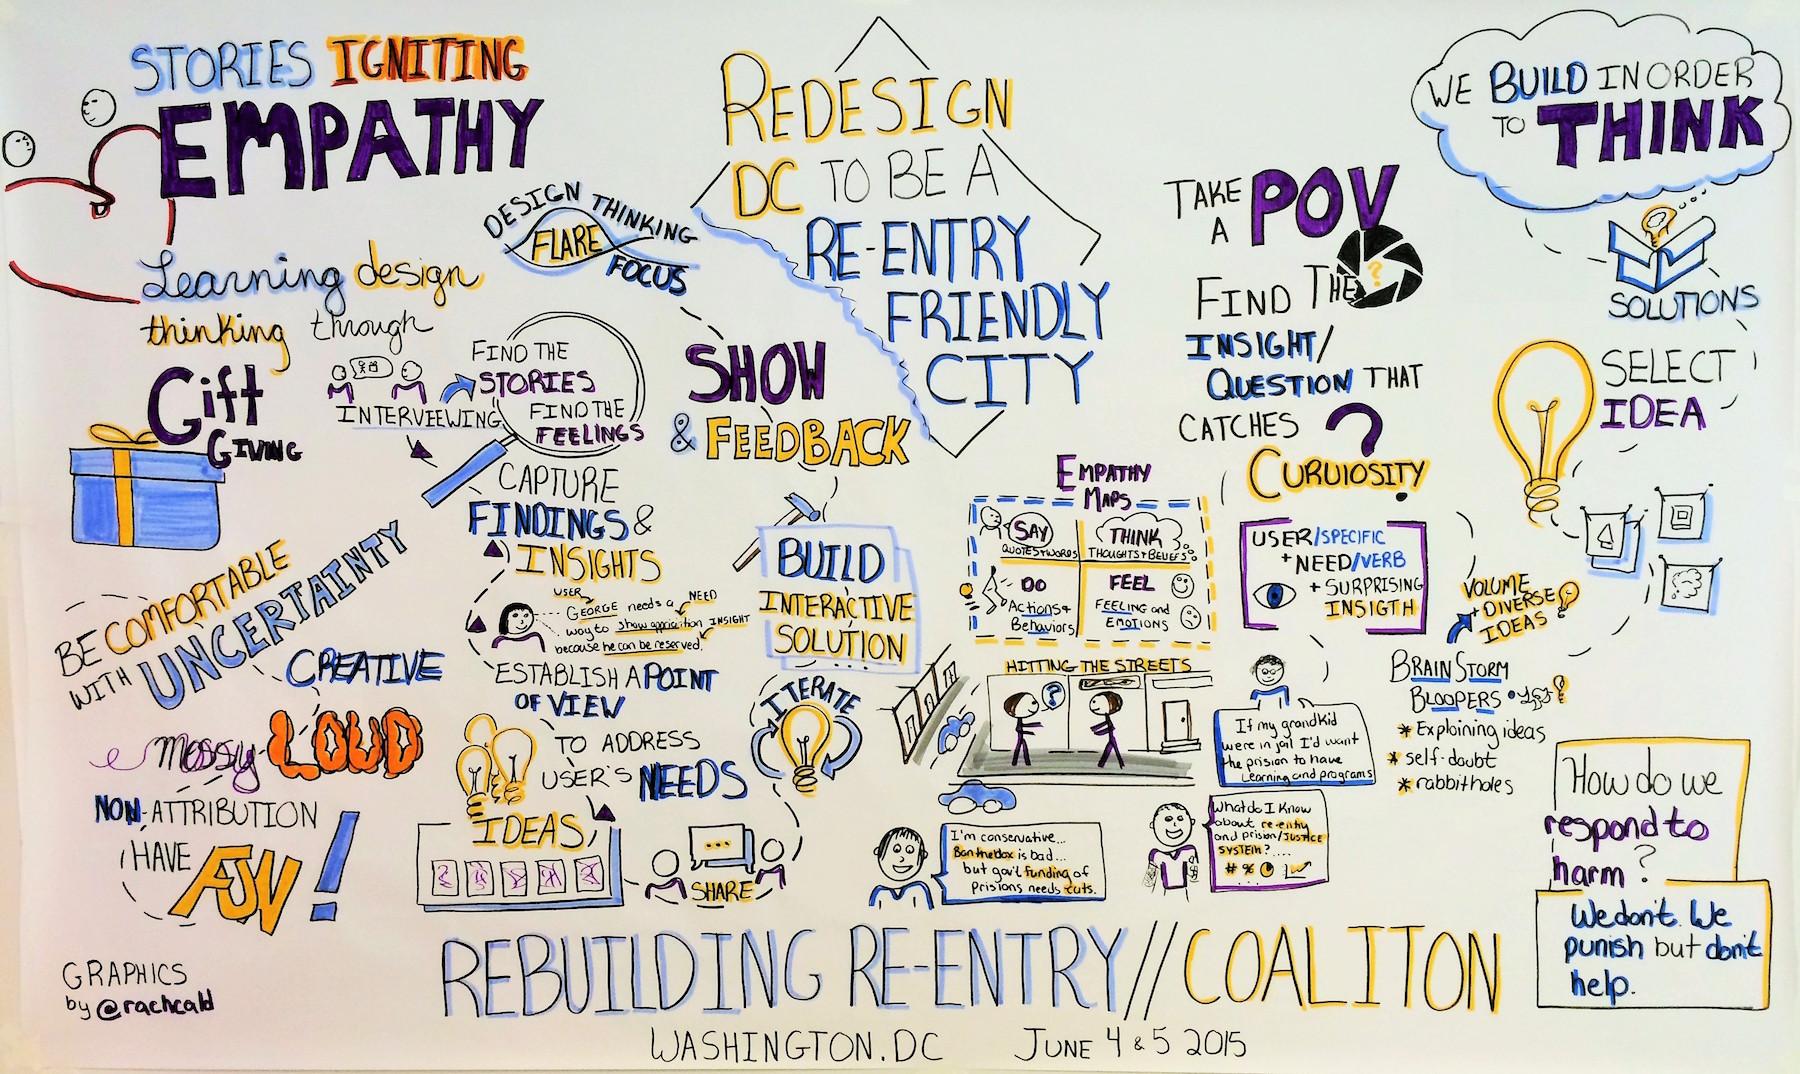 graphic recording by Rachel Thompson of Daring Studios